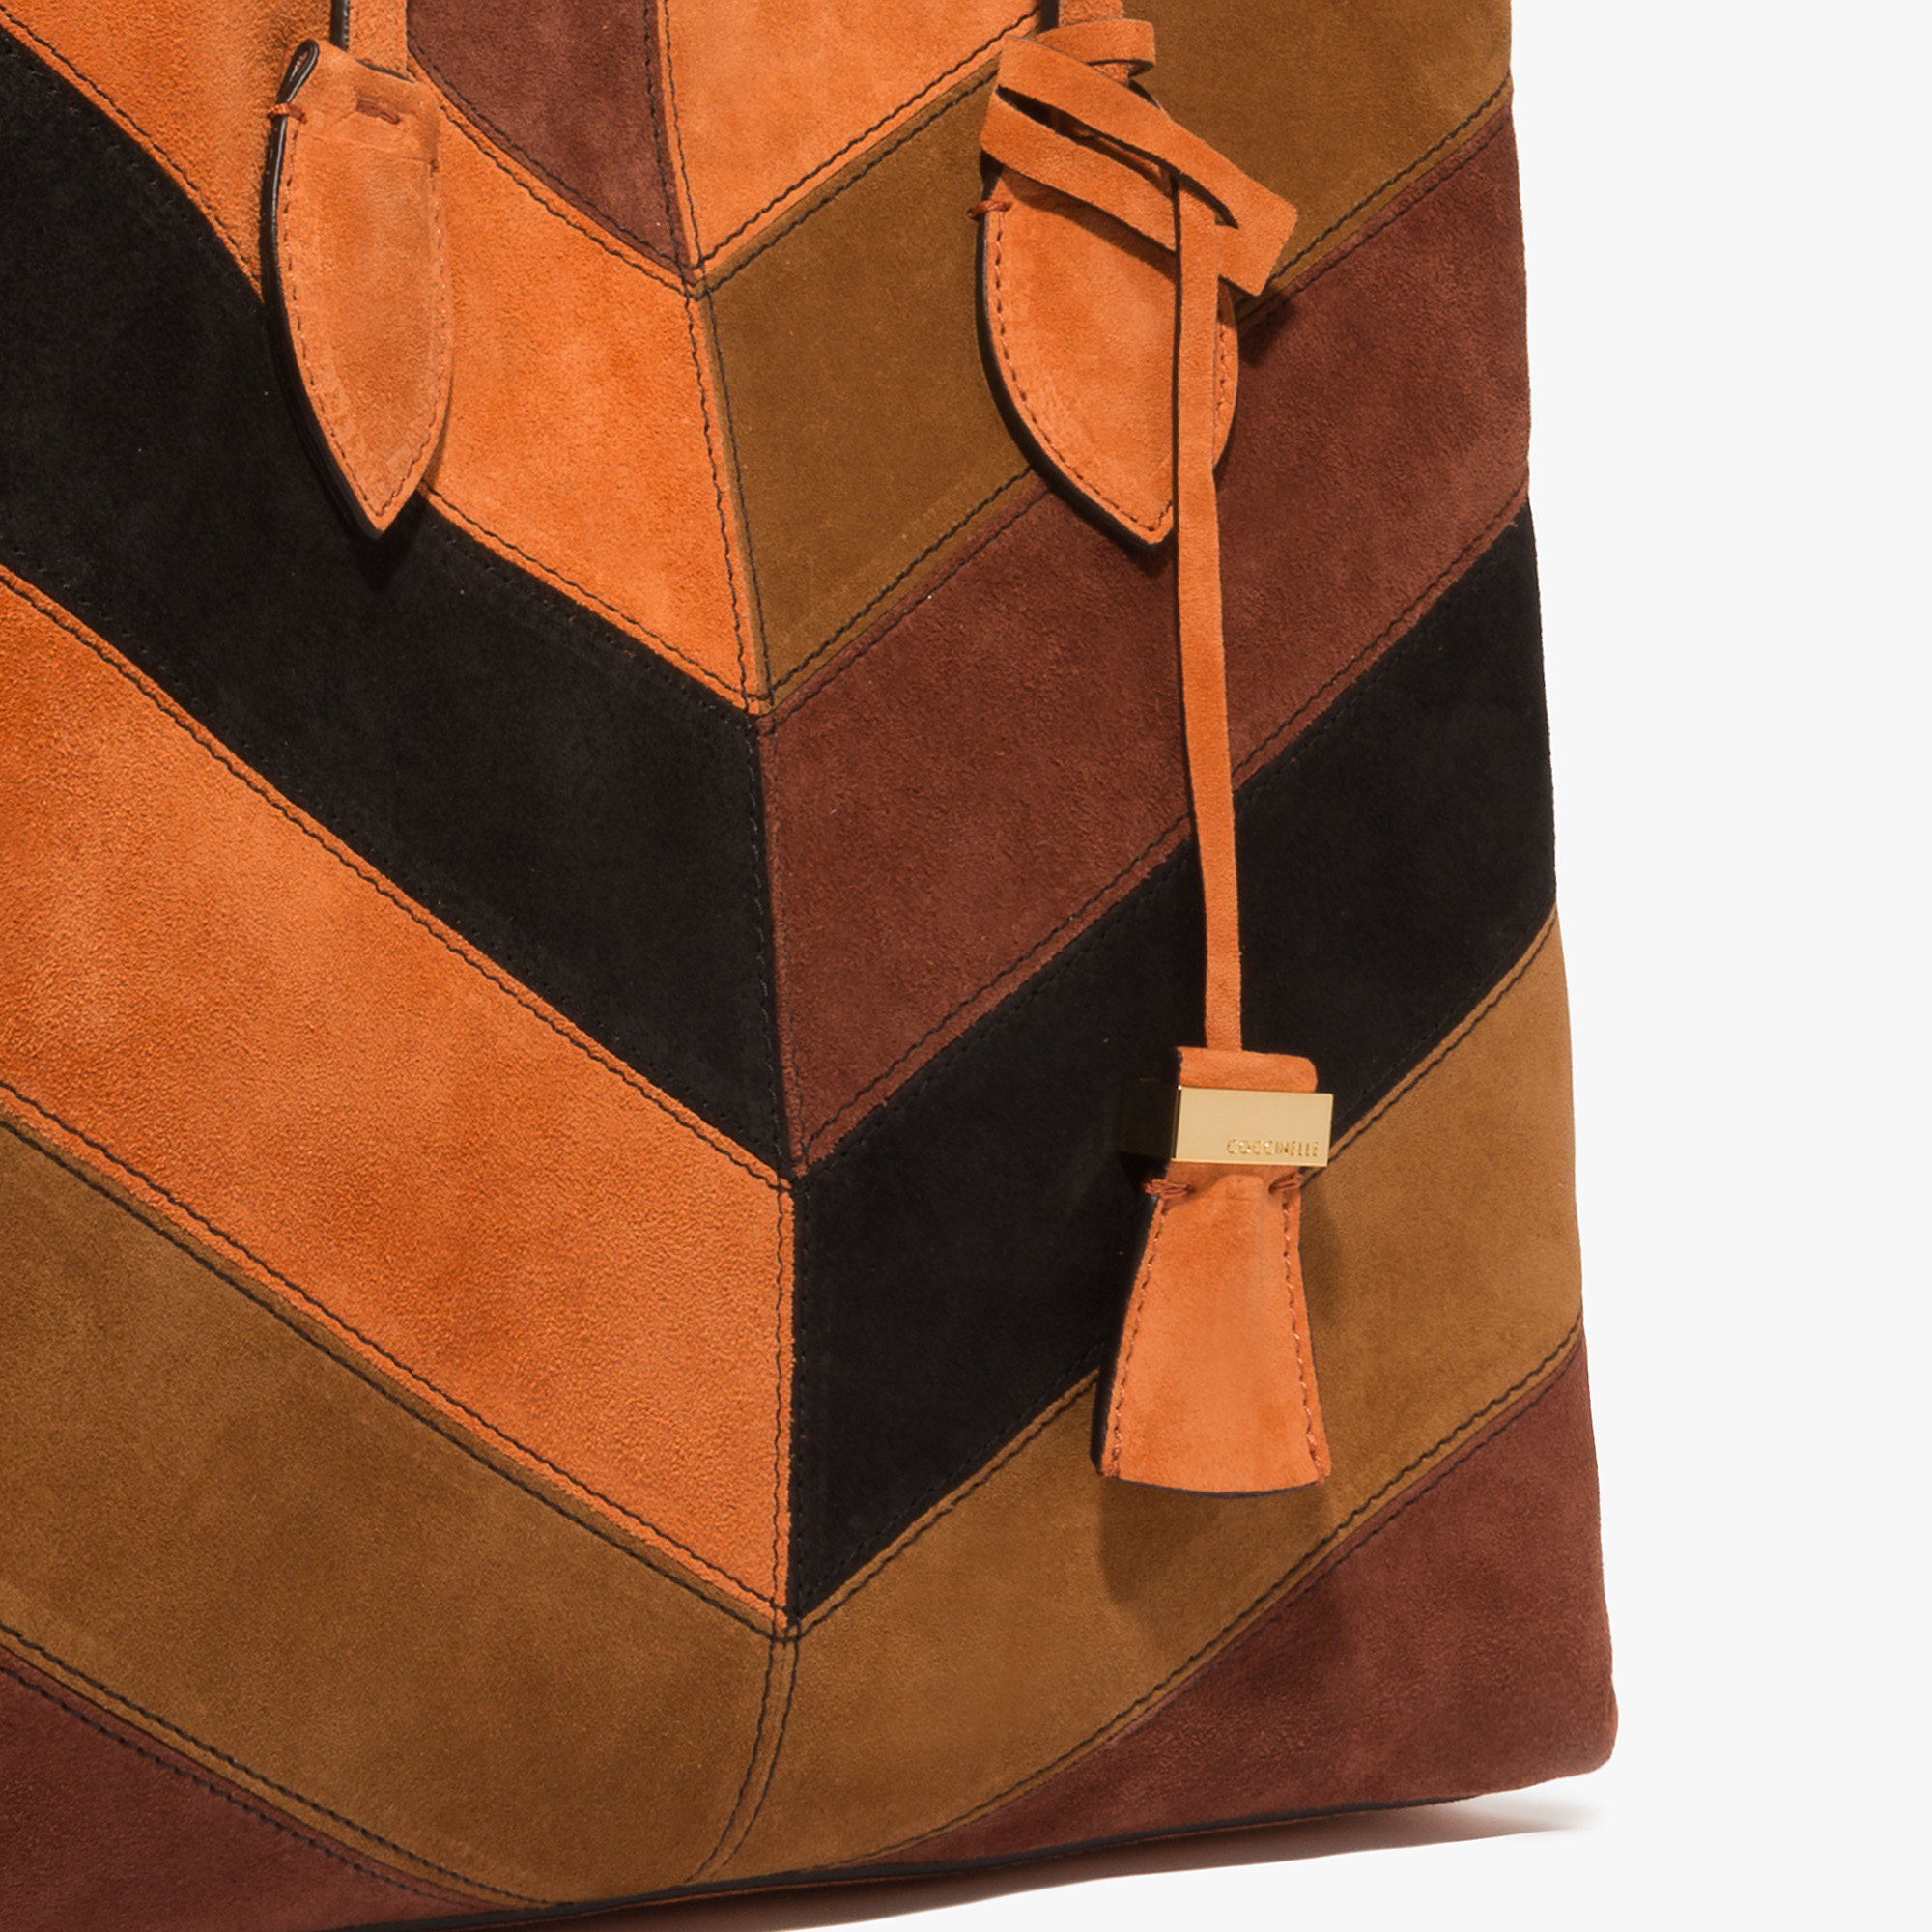 Coccinelle Celene suede and leather shopping tote